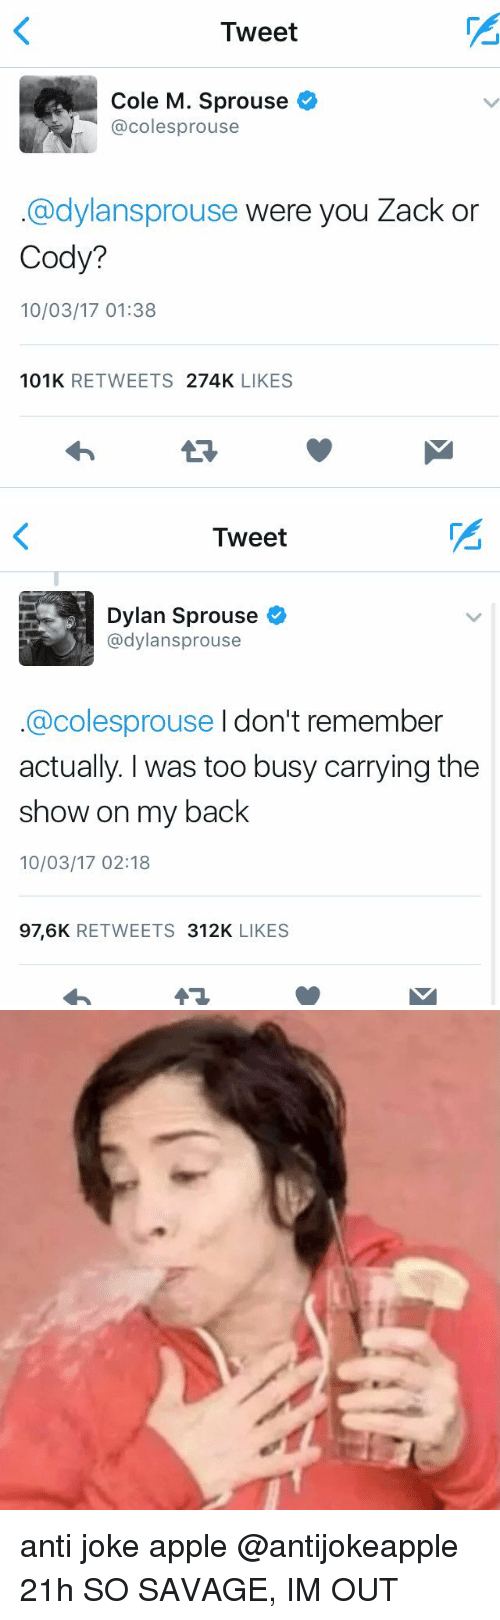 anti jokes: Tweet  Cole M. Sprouse  @cole sprouse  @dylansprouse were you Zack or  Cody?  10/03/17 01:38  101K  RETWEETS  274K  LIKES   Tweet  Dylan Sprouse  @dylansprouse  @colesprouse I don't remember  actually. was too busy carrying the  show on my back  10/03/17 02:18  97,6K  RETWEETS  312K  LIKES anti joke apple @antijokeapple 21h SO SAVAGE, IM OUT